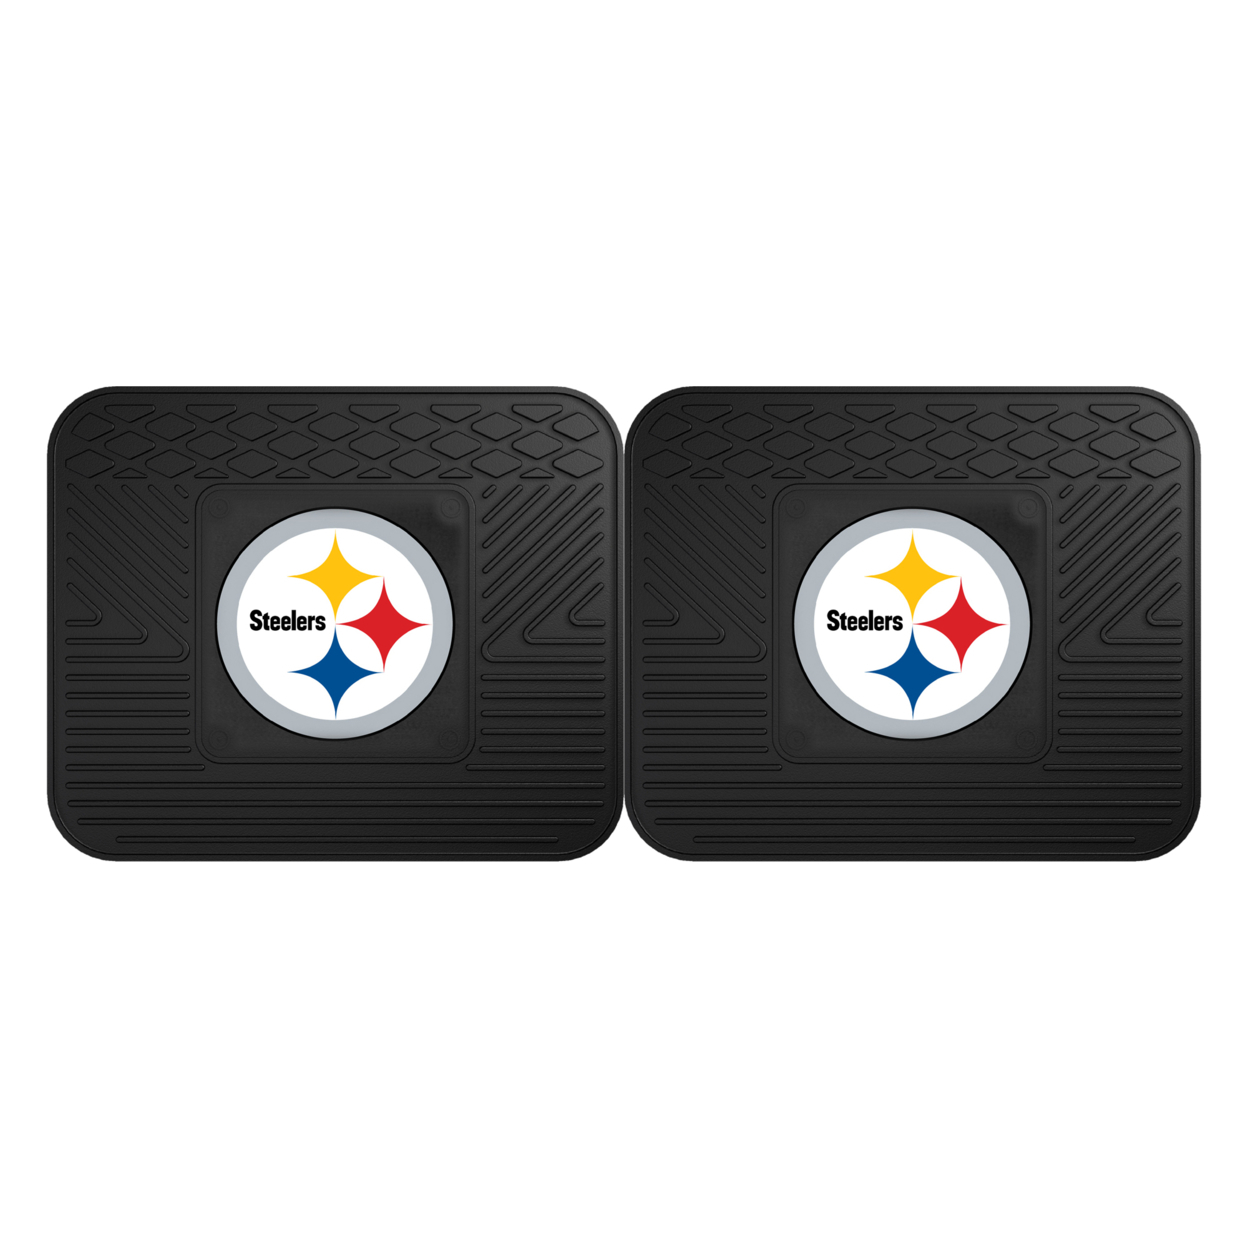 Nfl- Pittsburgh Steelers 2 Utility Mats 56a13e31a3771c73738bdbd2